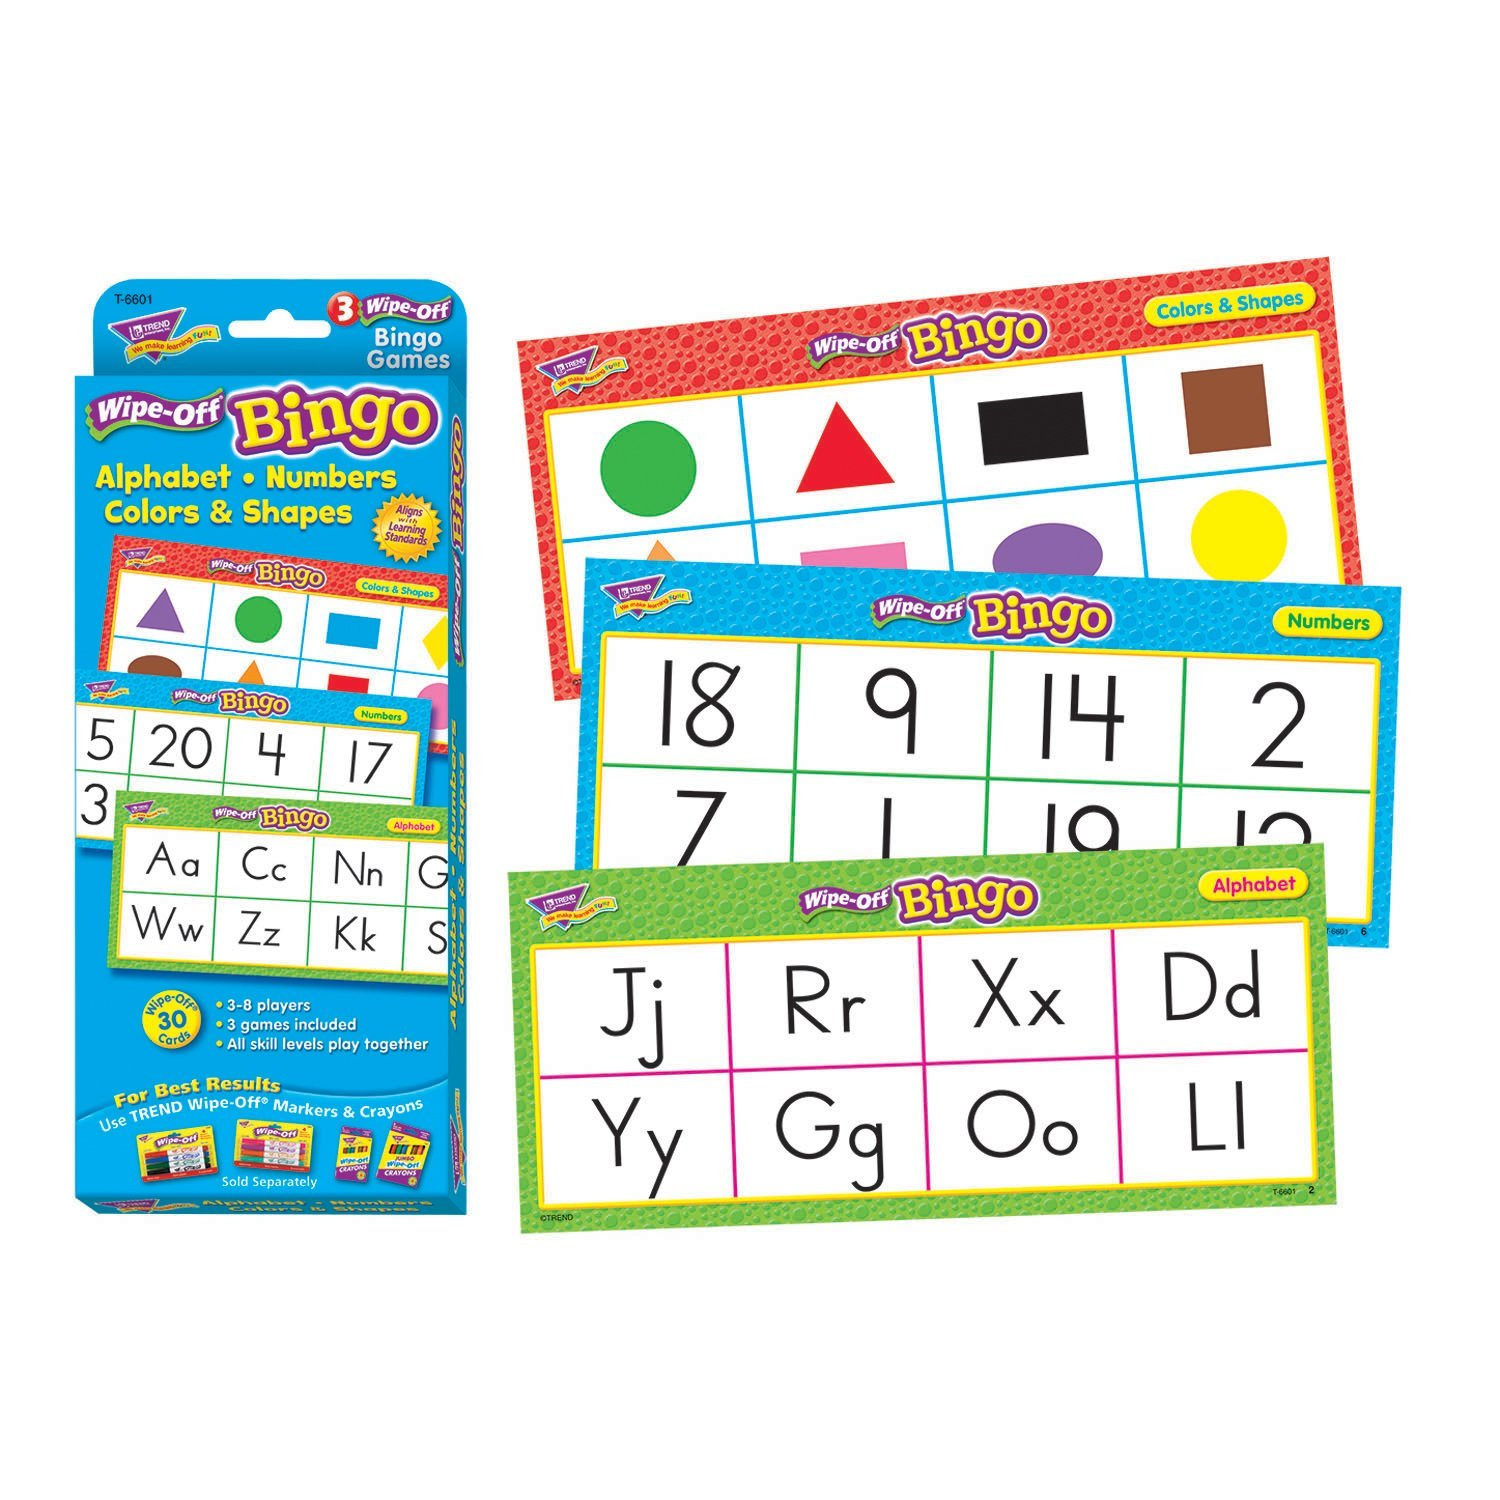 Trend Enterprises Alphabet, Numbers, Colors & Shapes Wipe-Off Bingo Game (28 Piece), de Pre Difficulty Activity Math Matching Third Spanish from Homophones Shapes Pack.., By Trend Enterprises Inc